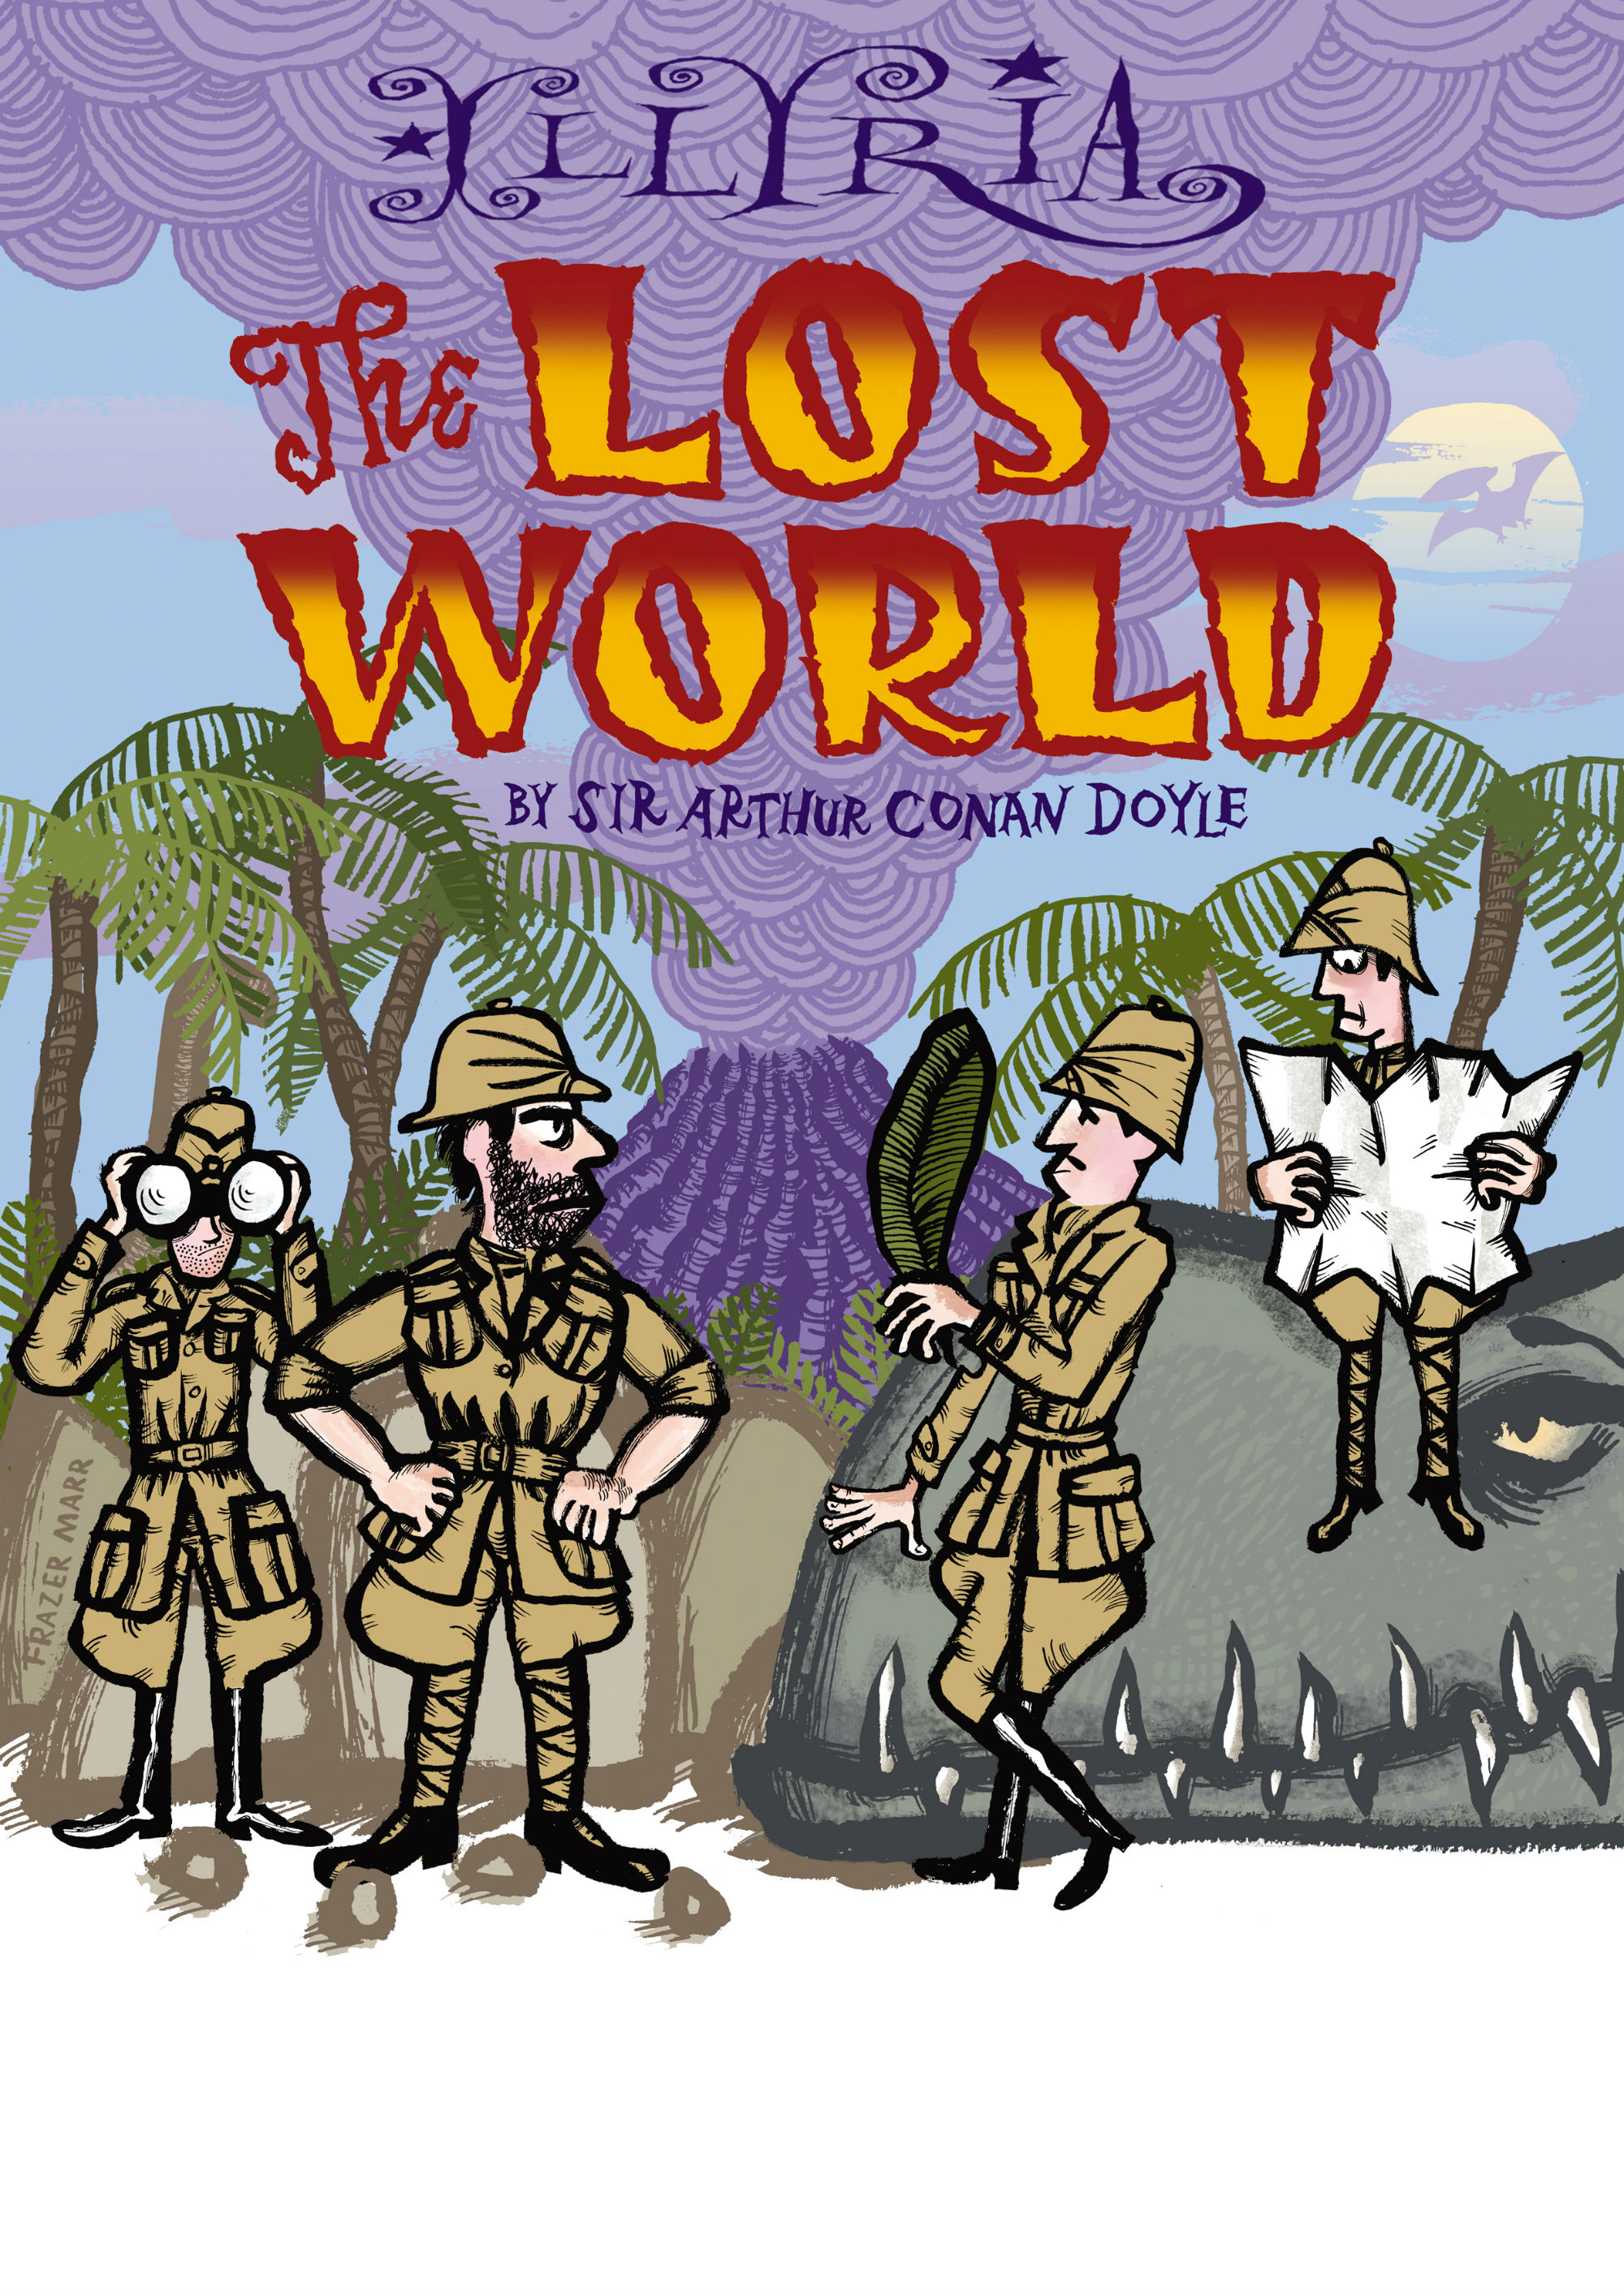 Illyria performance of The Lost World